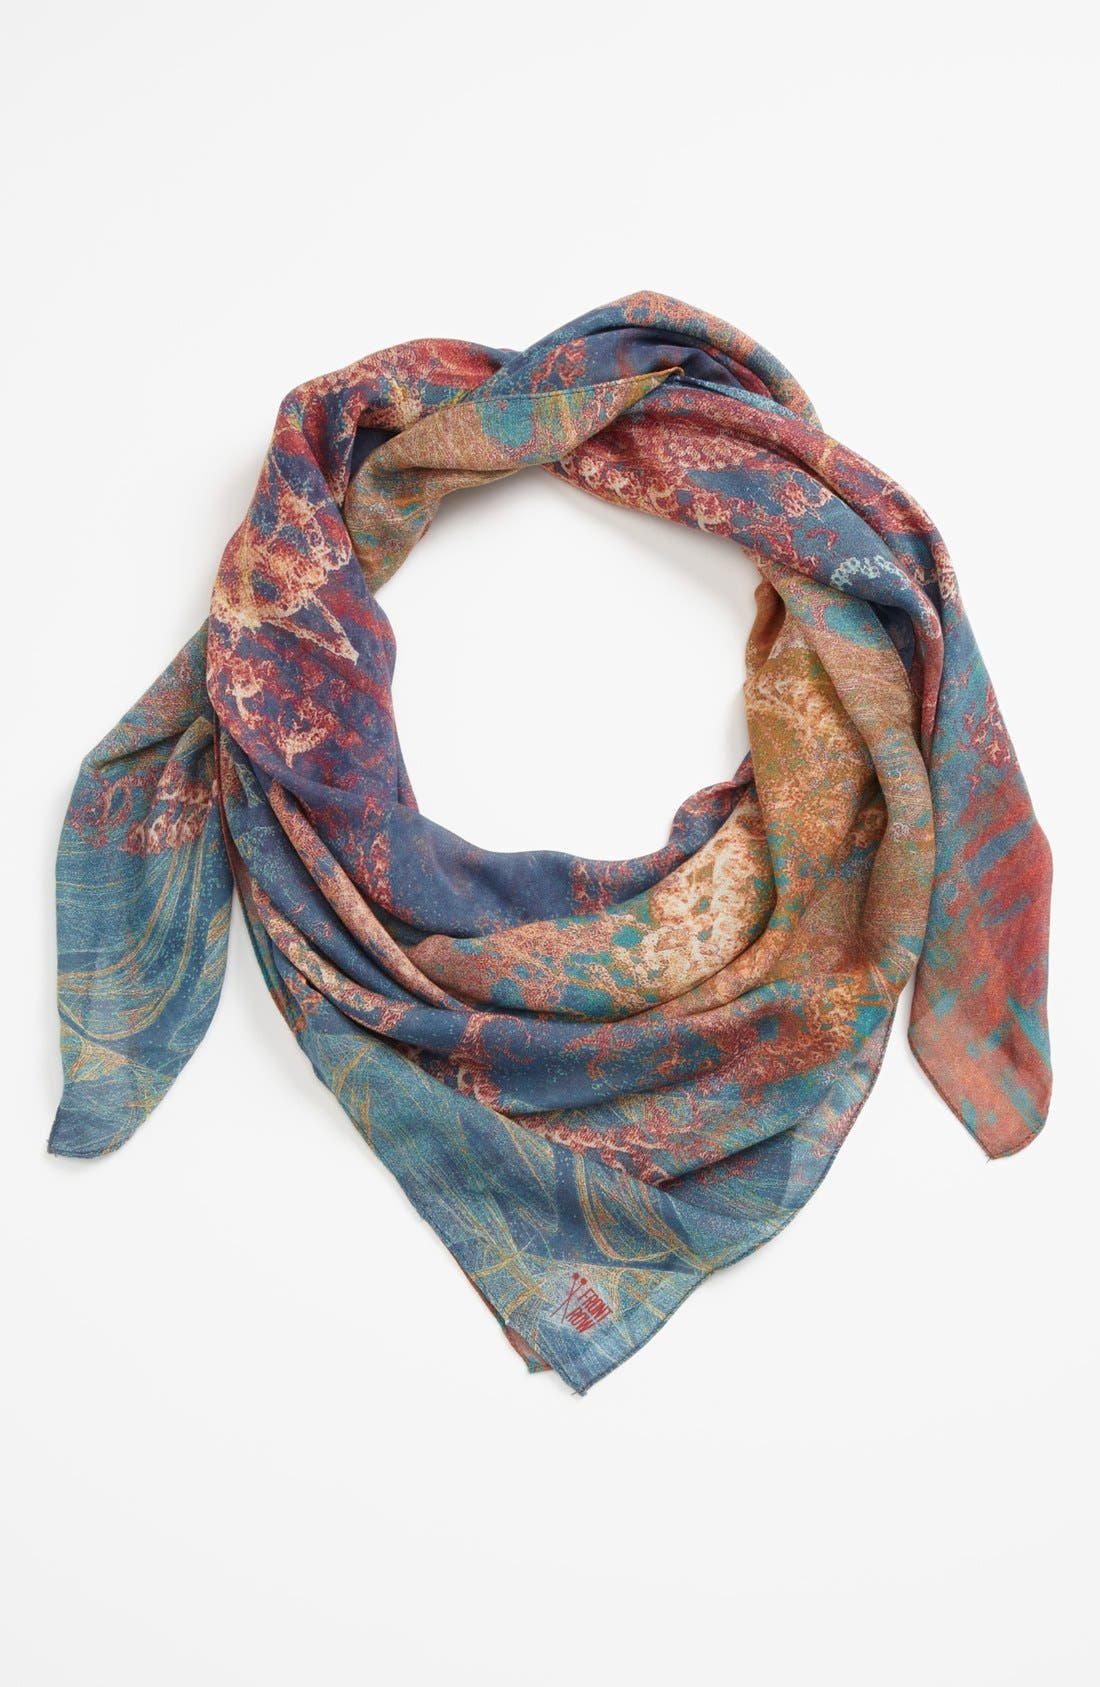 Alternate Image 1 Selected - Front Row Society 'Coral Melody' Scarf